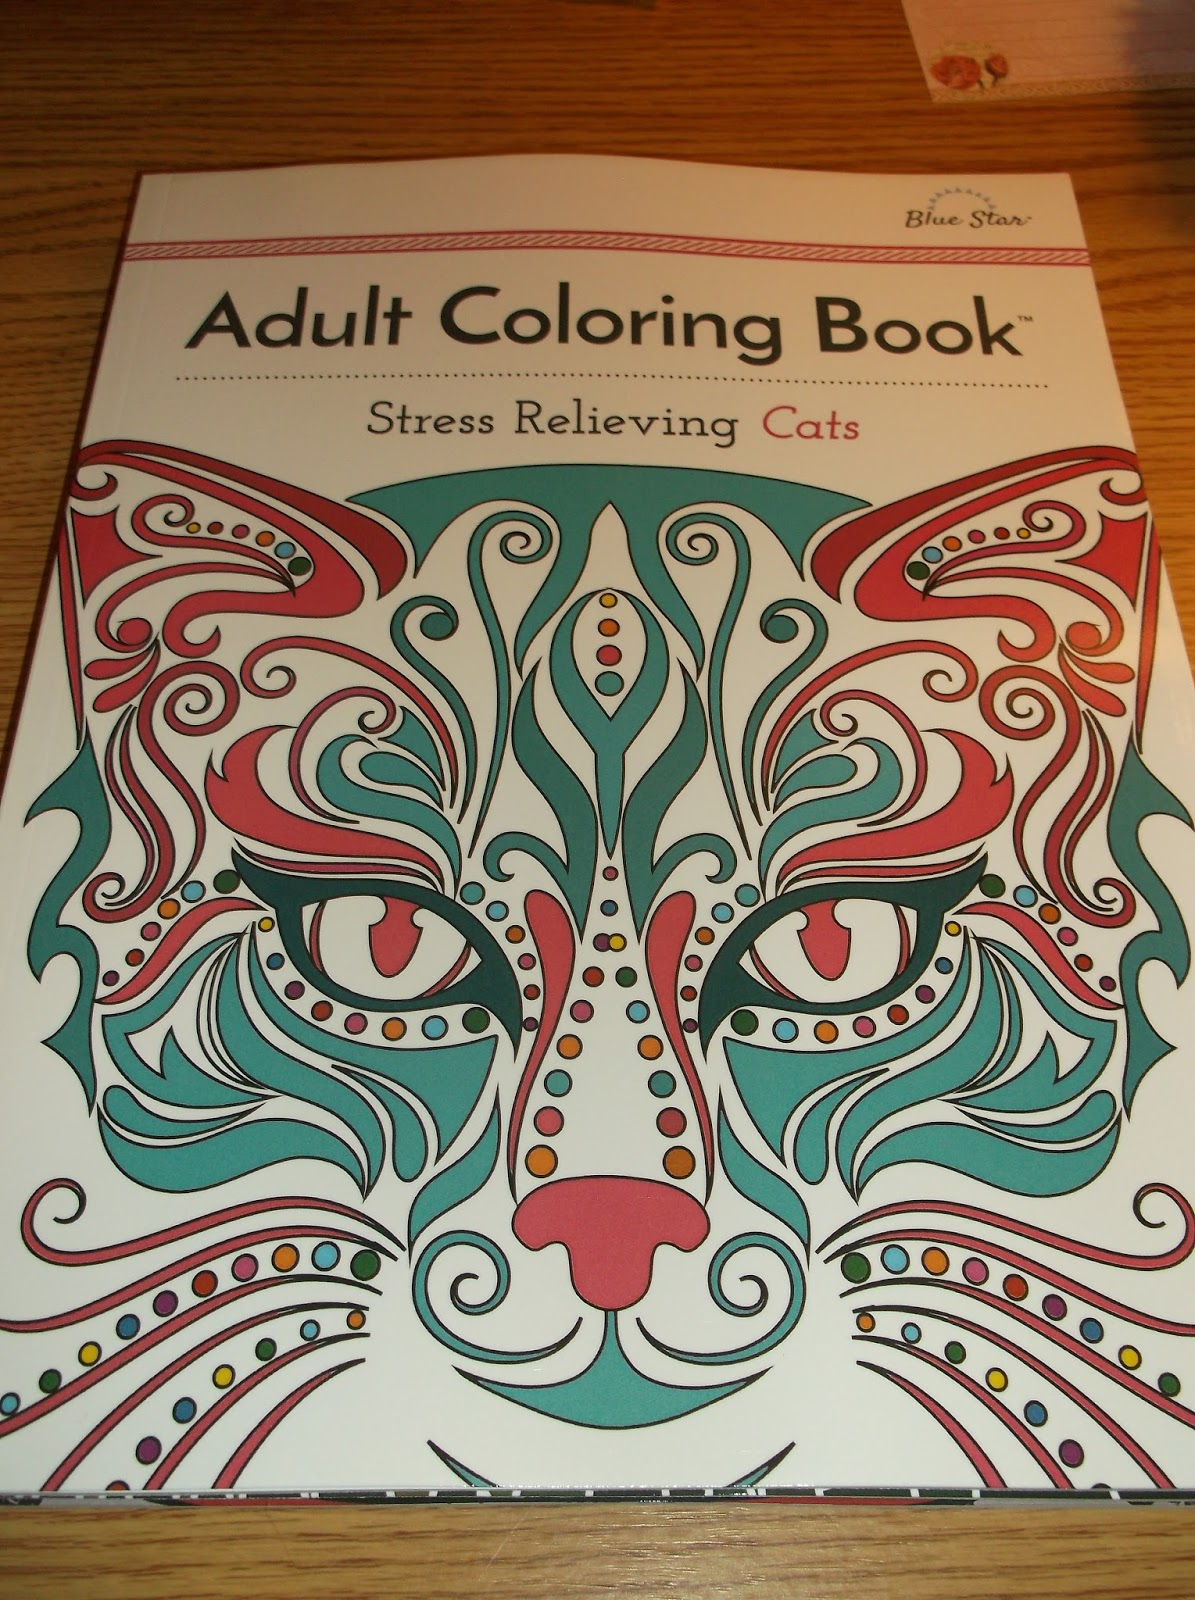 Stress relieving cats coloring - Adult Coloring Book Stress Relieving Cats This Coloring Book Contains Over 30 Lovingly Detailed Designs Featuring Everyone S Favorite Furry